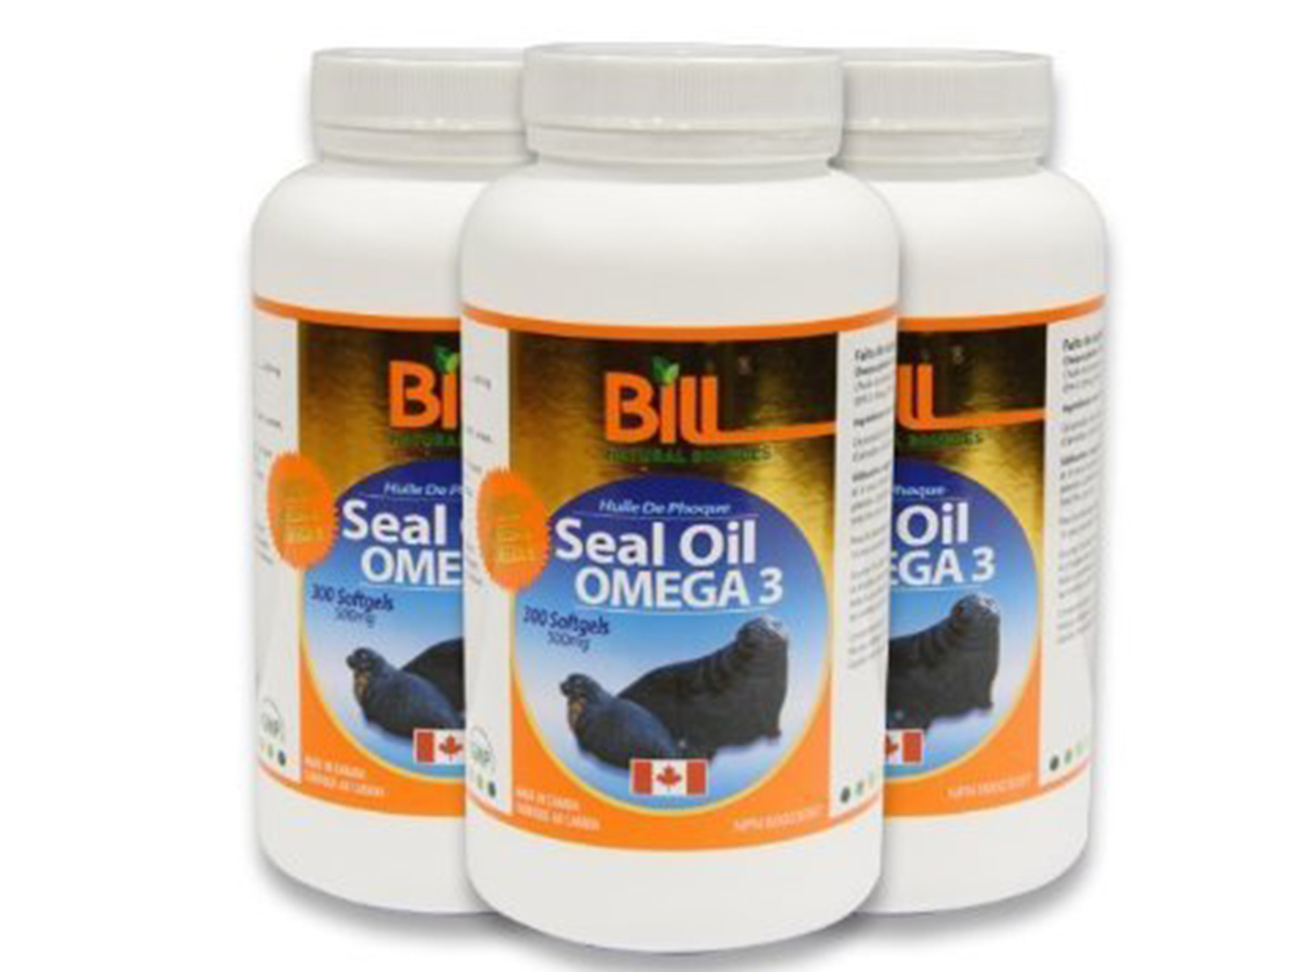 Seal Oil Supplements